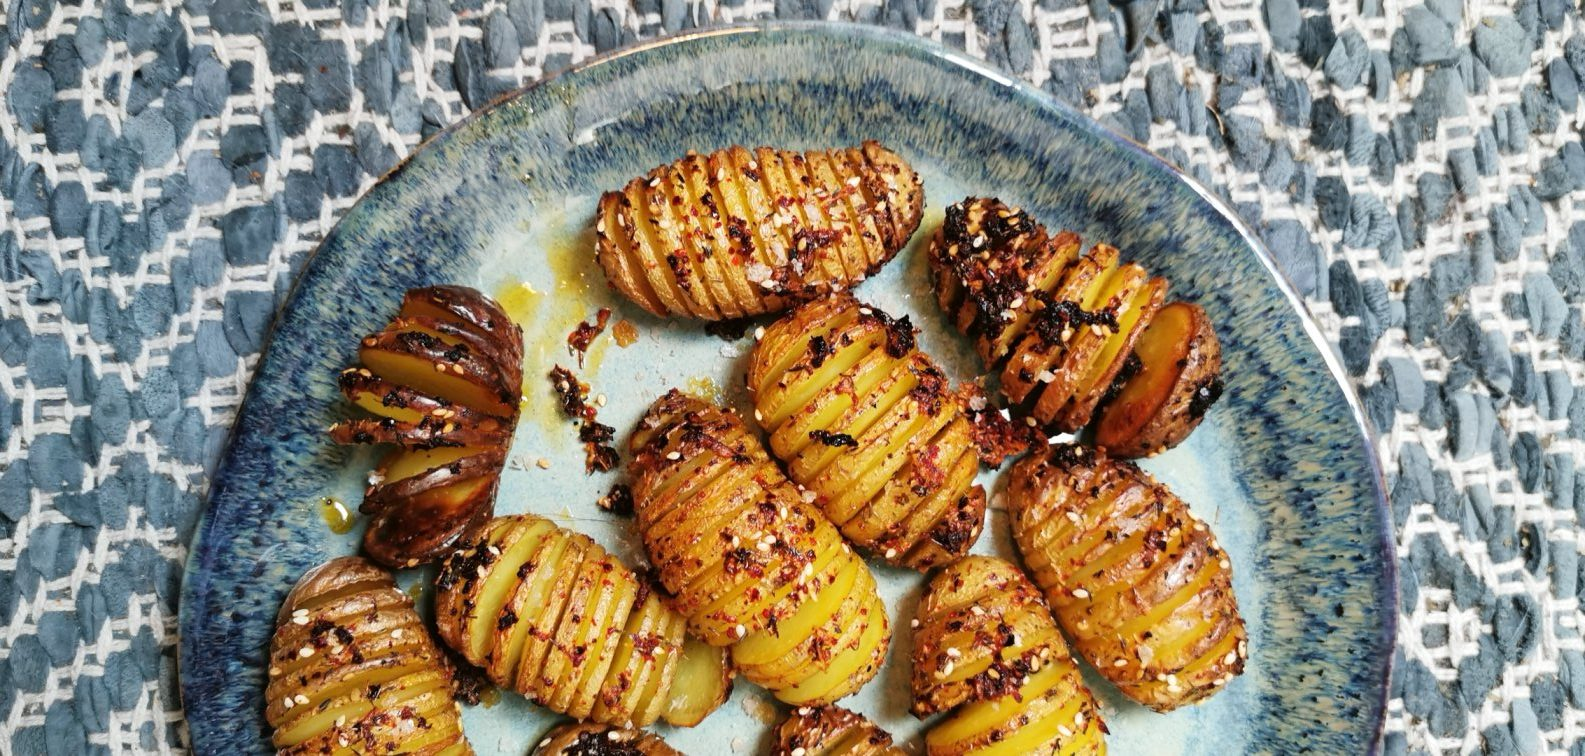 HOW TO IMPROVE YOUR HASSELBACK POTATOES